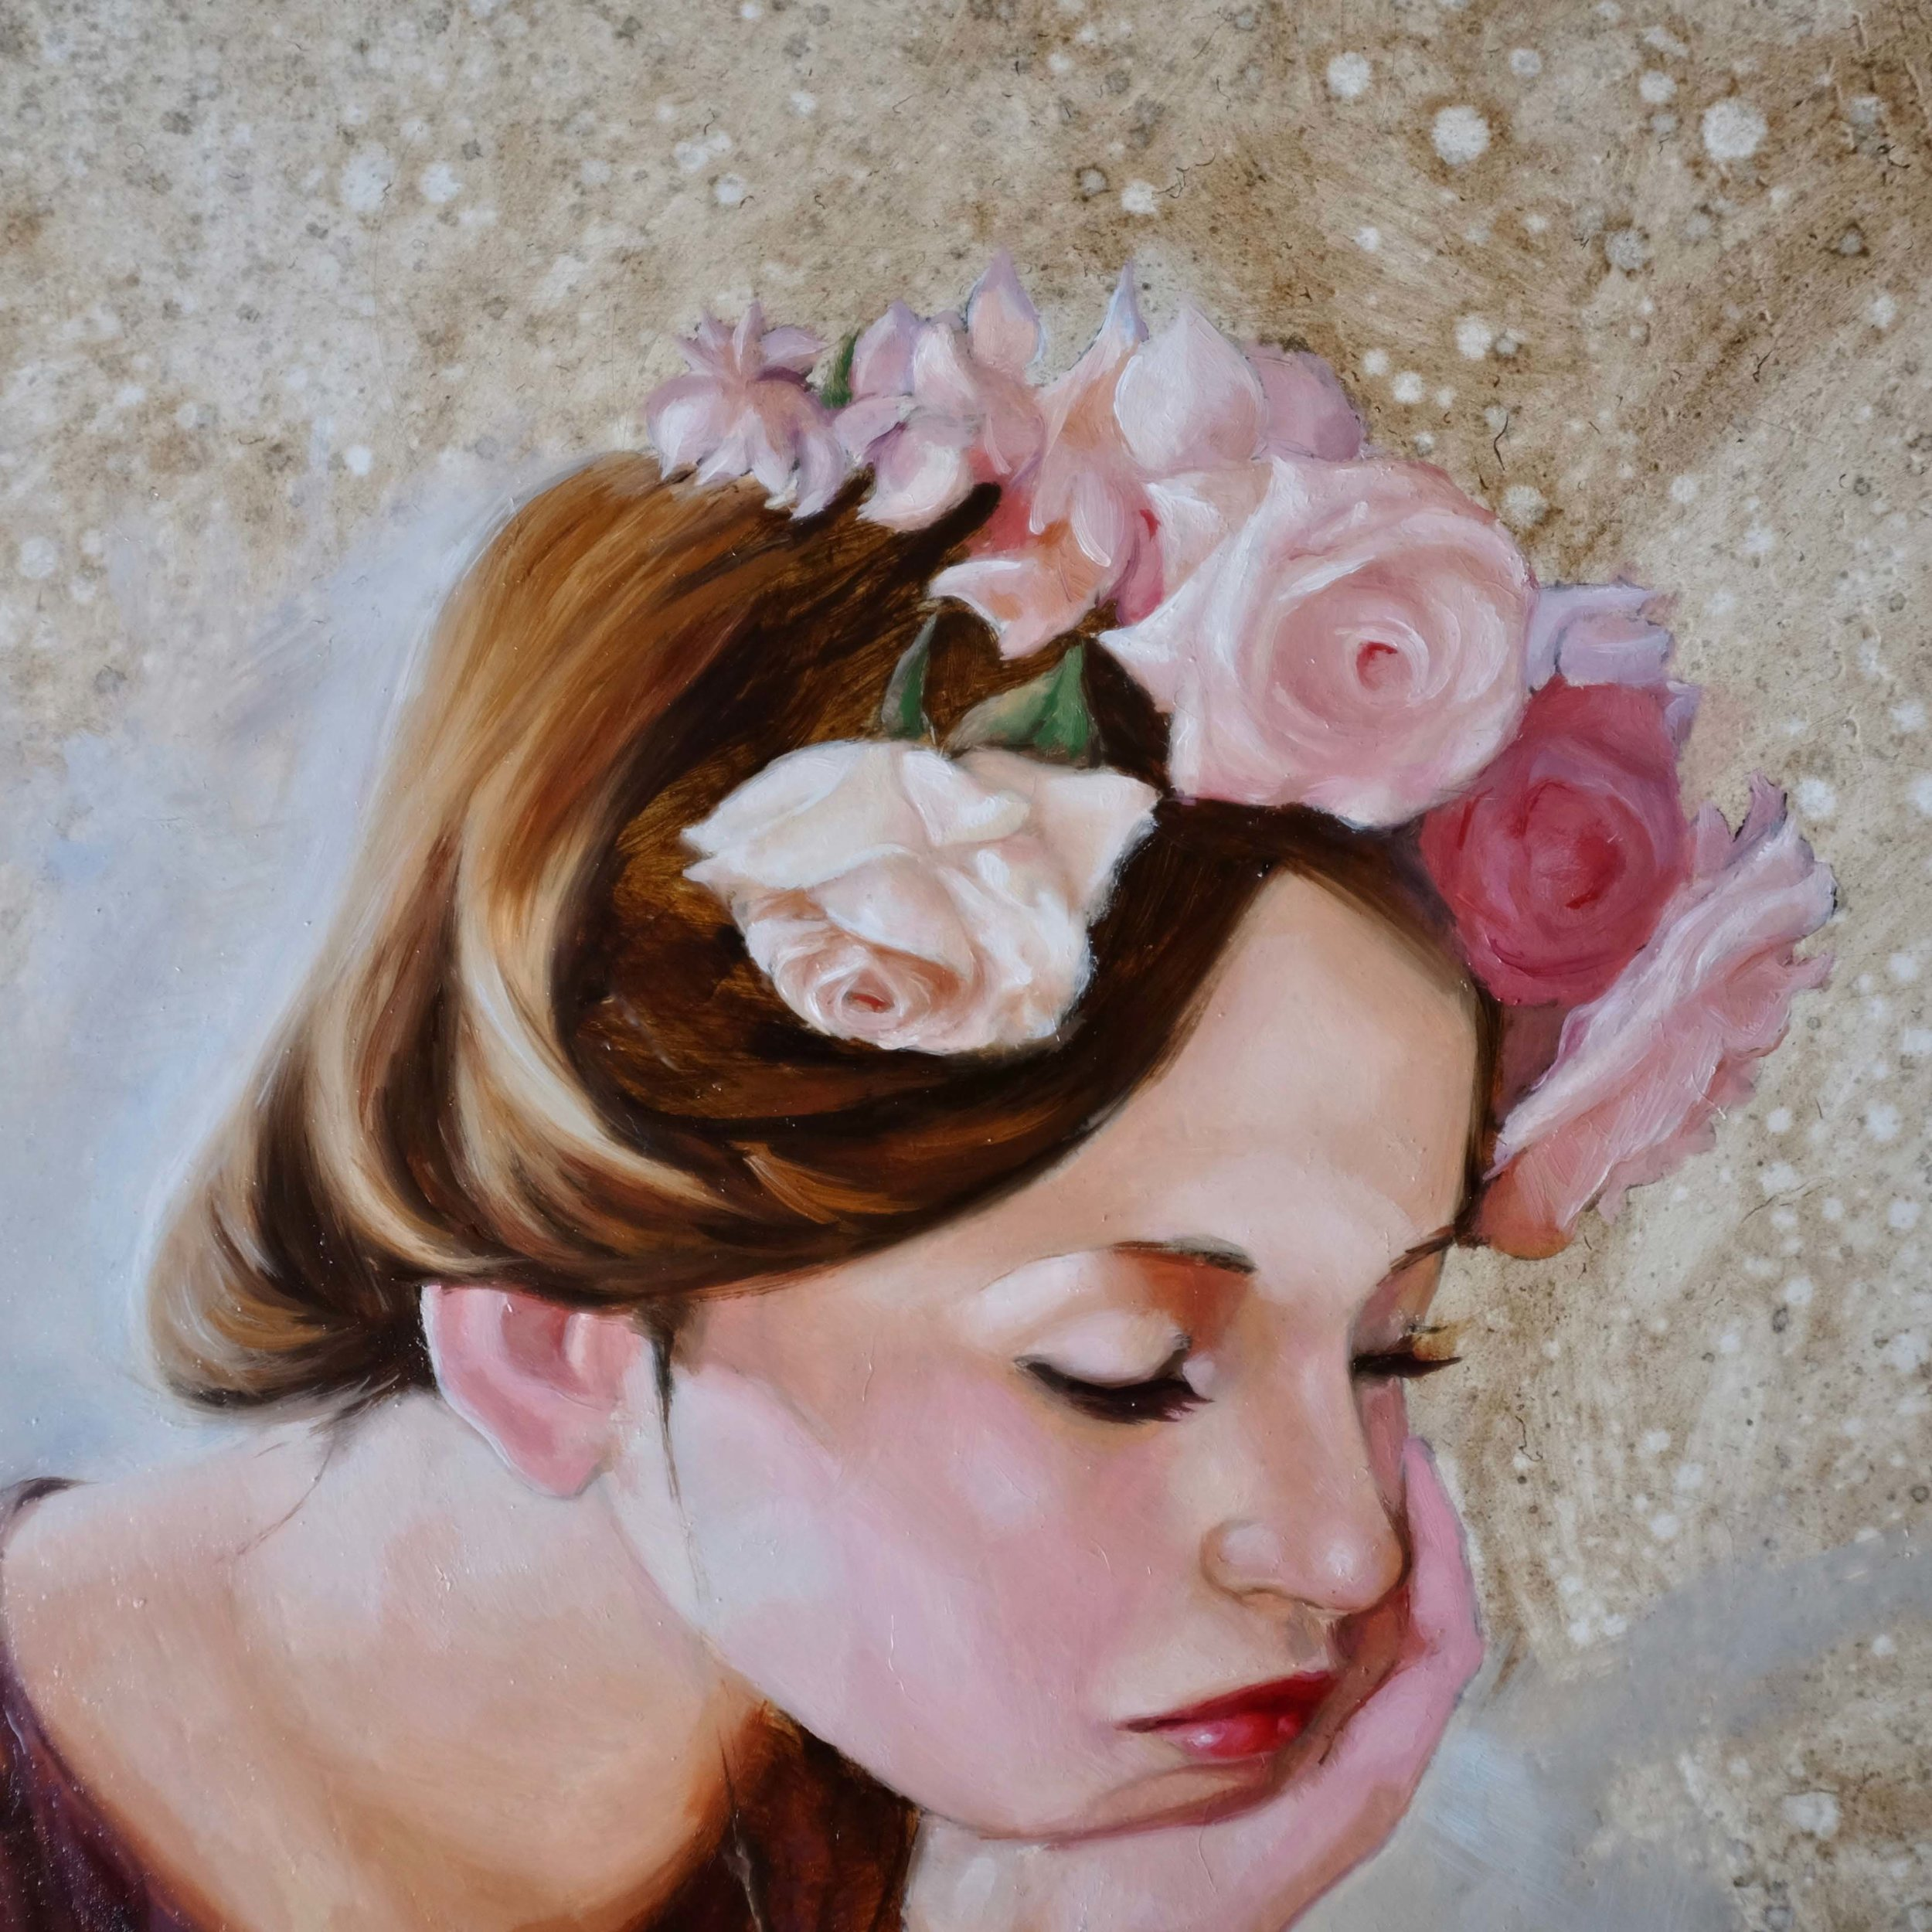 Wistful Maiden detail by Soraya Bradley DSCF5945.jpg